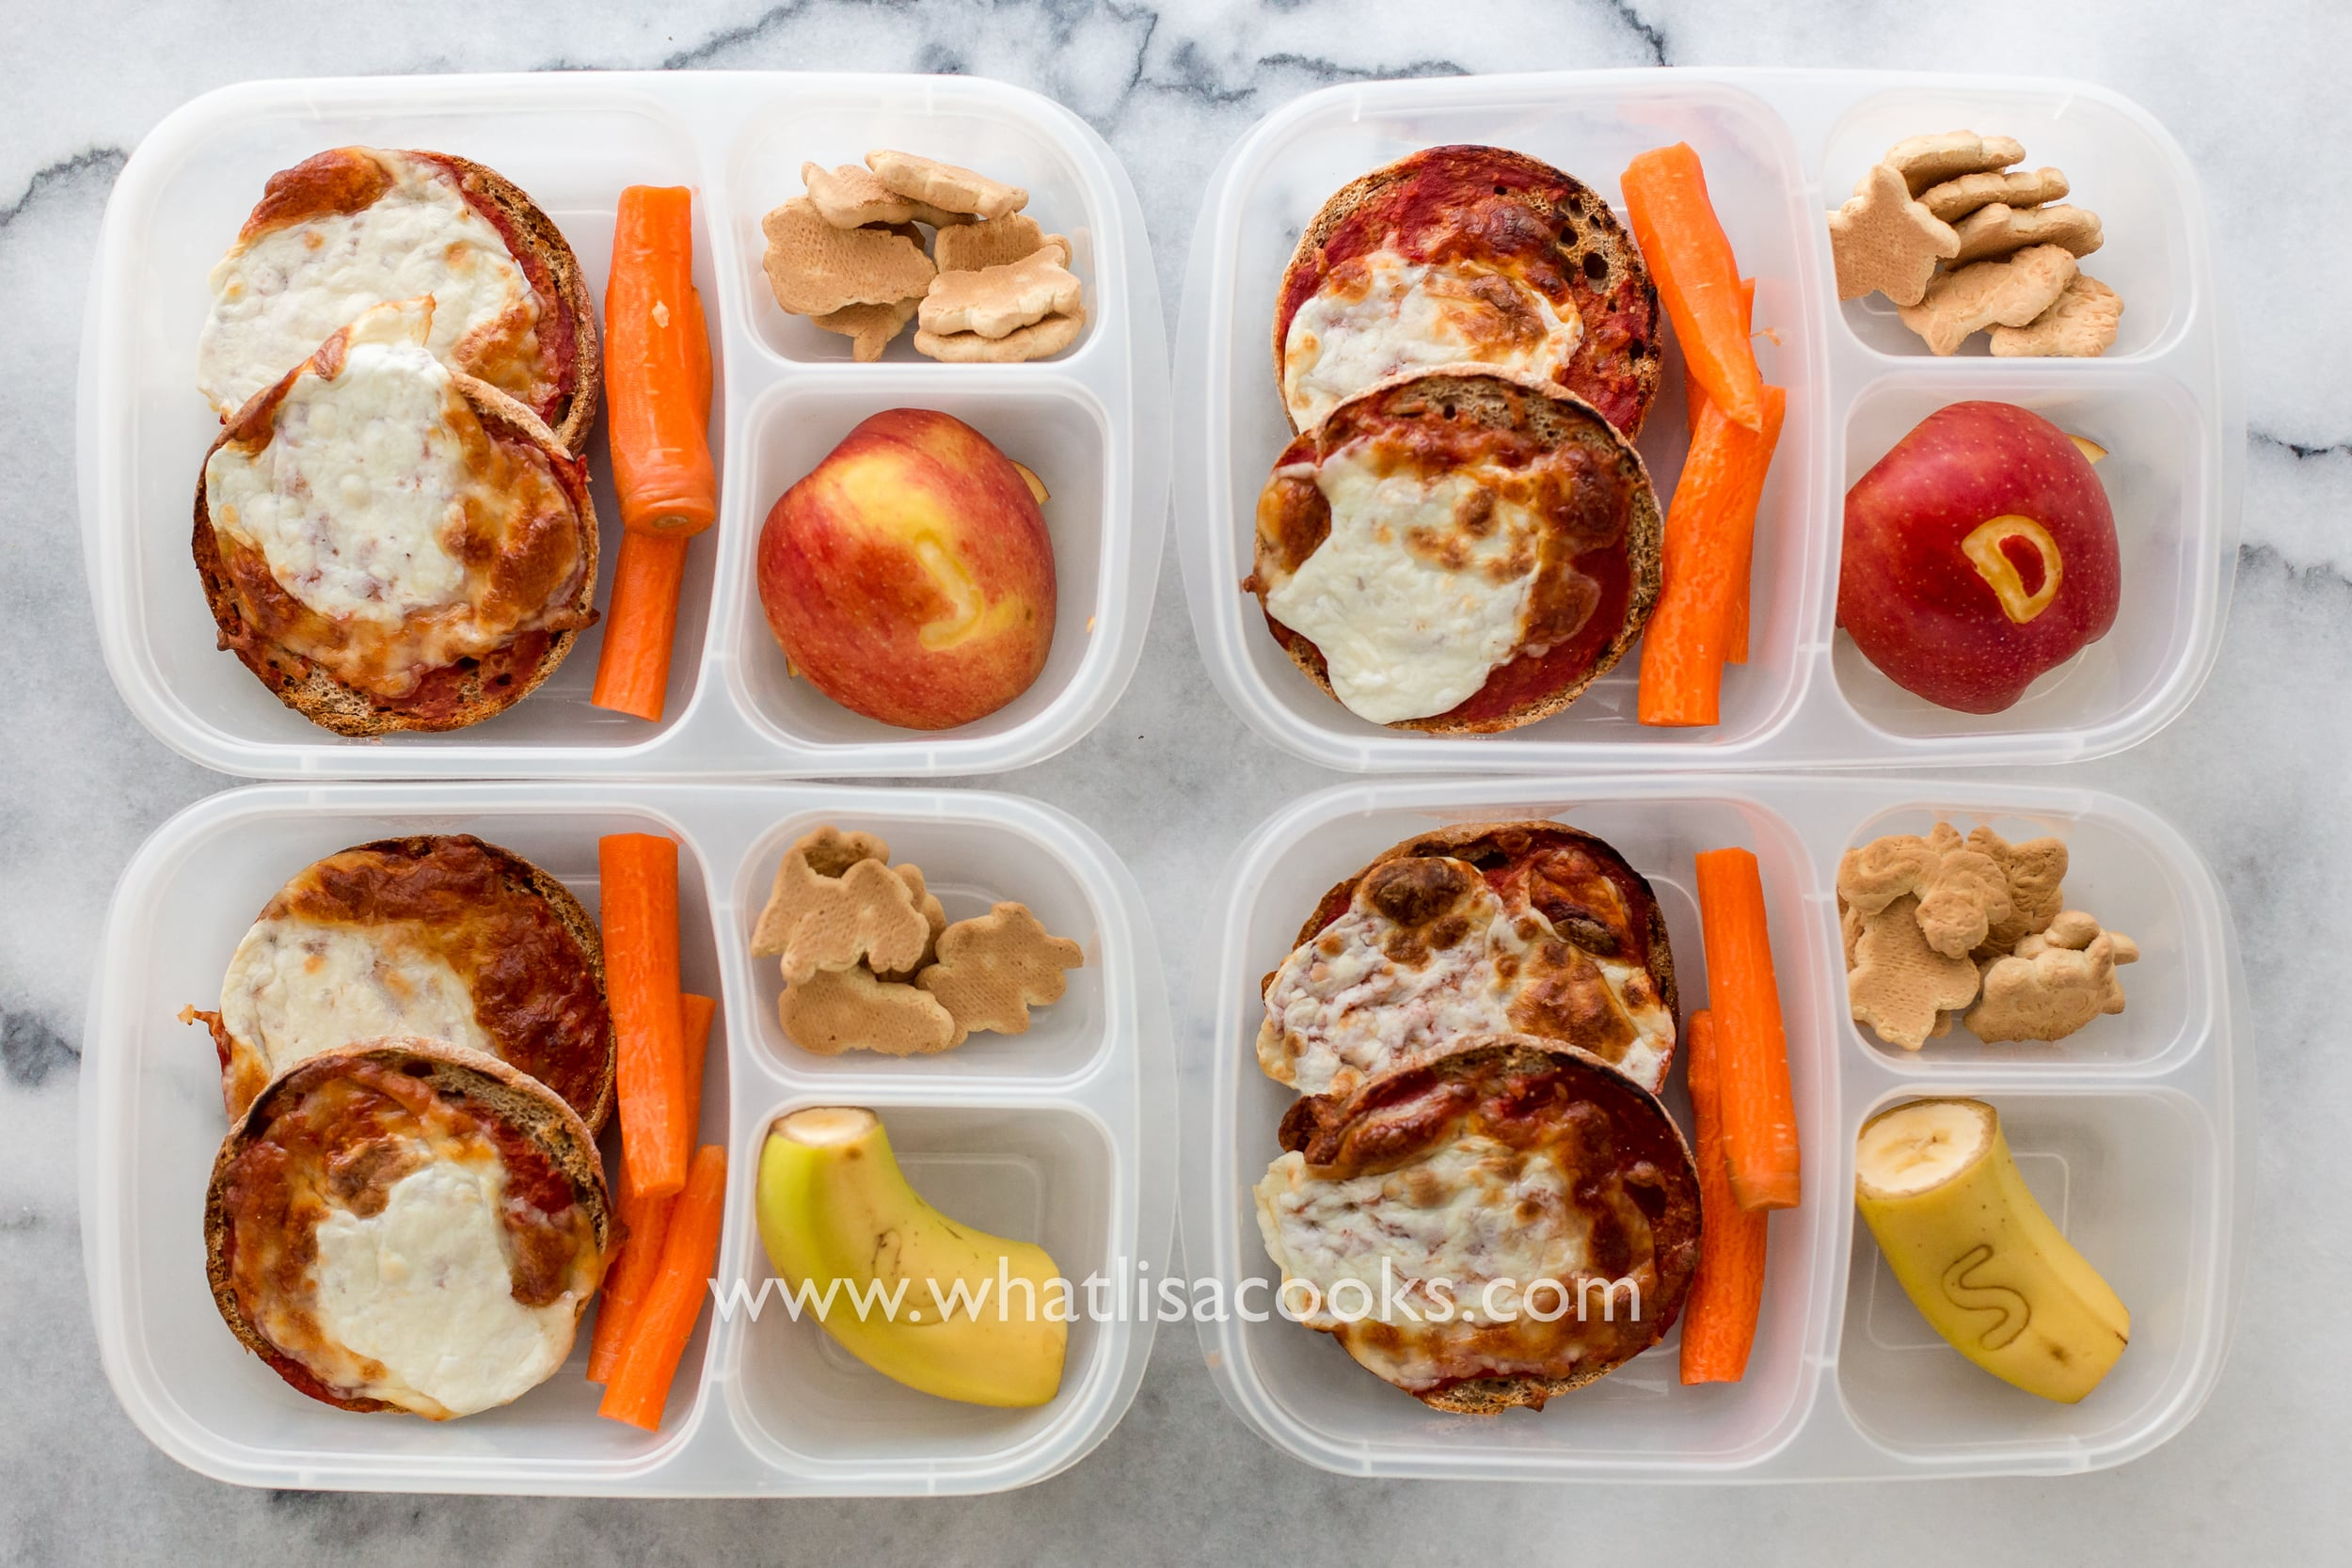 English Muffin mini pizzas for school lunch - from WhatLisaCooks.com